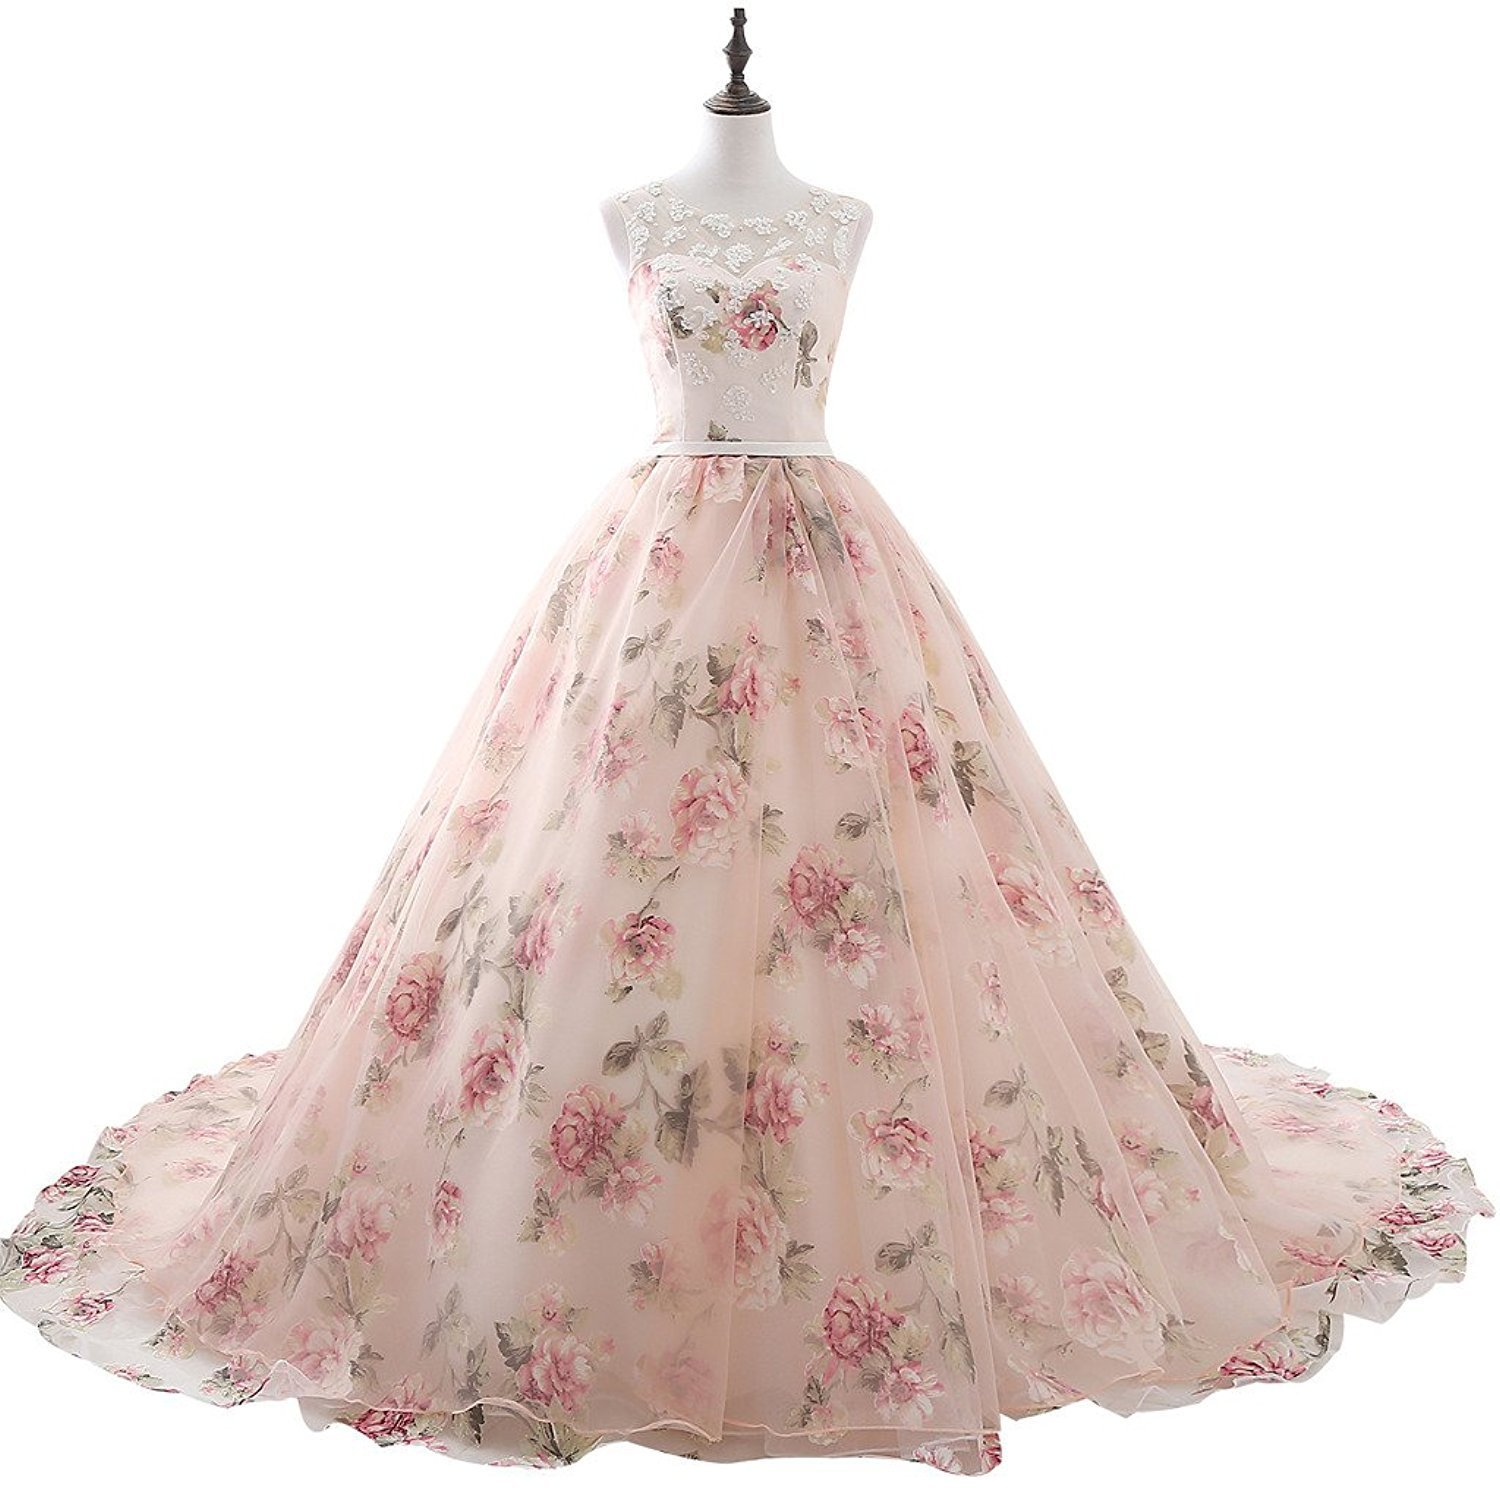 Aurora Bridal Women's Floral Long Prom Dresses 2018 Formal Evening Gown Size 26 Pink